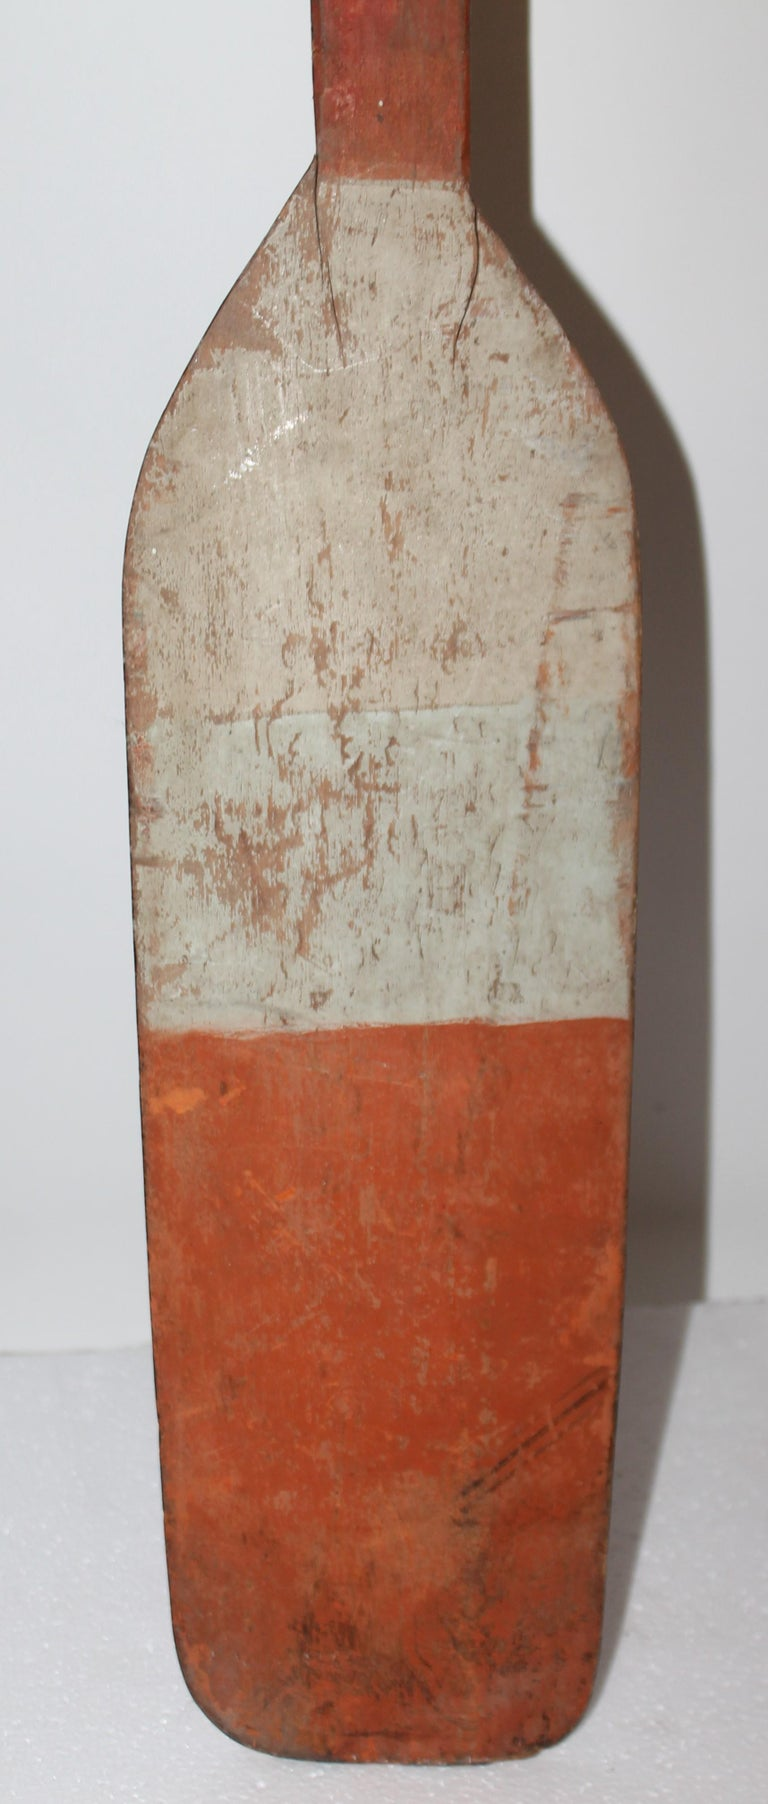 This cool 19thc orange & white painted paddle in fine condition.Great on the wall in a beach house or cottage.